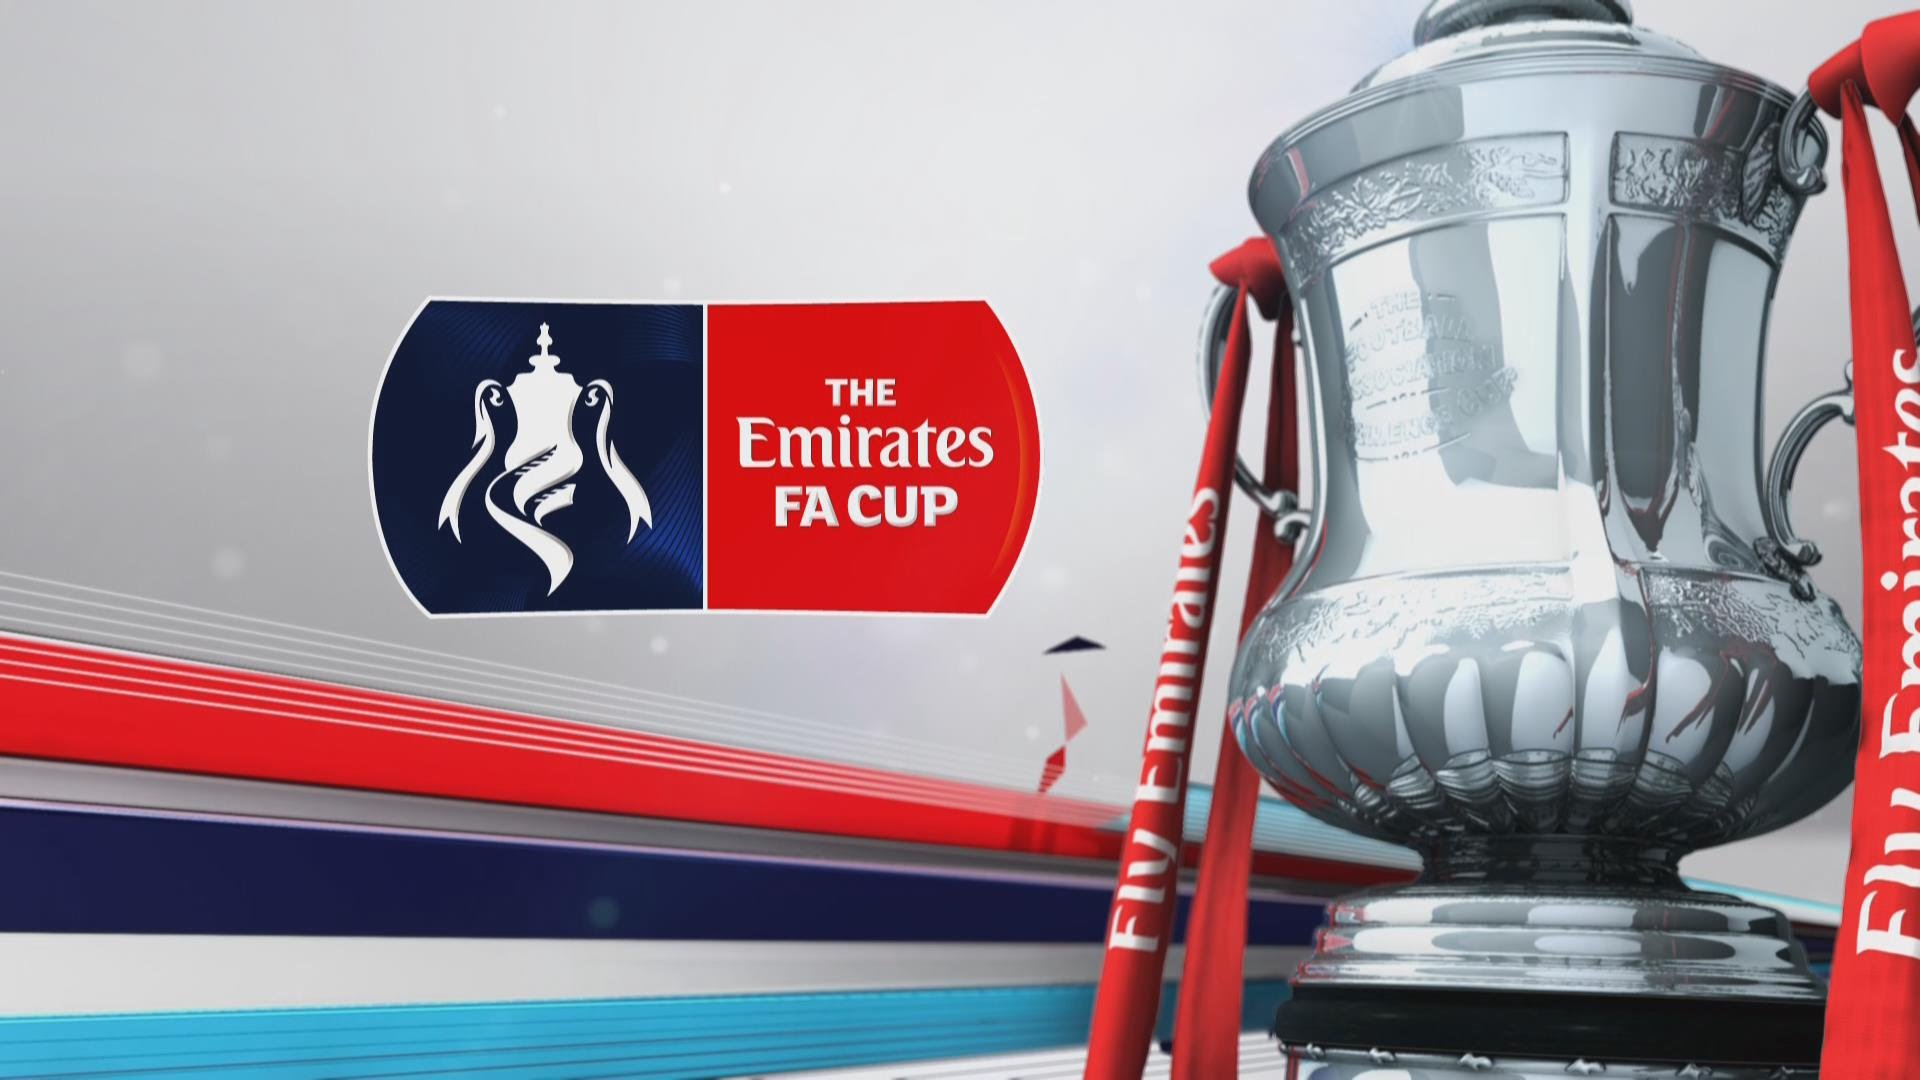 Fa Cup Final 2021